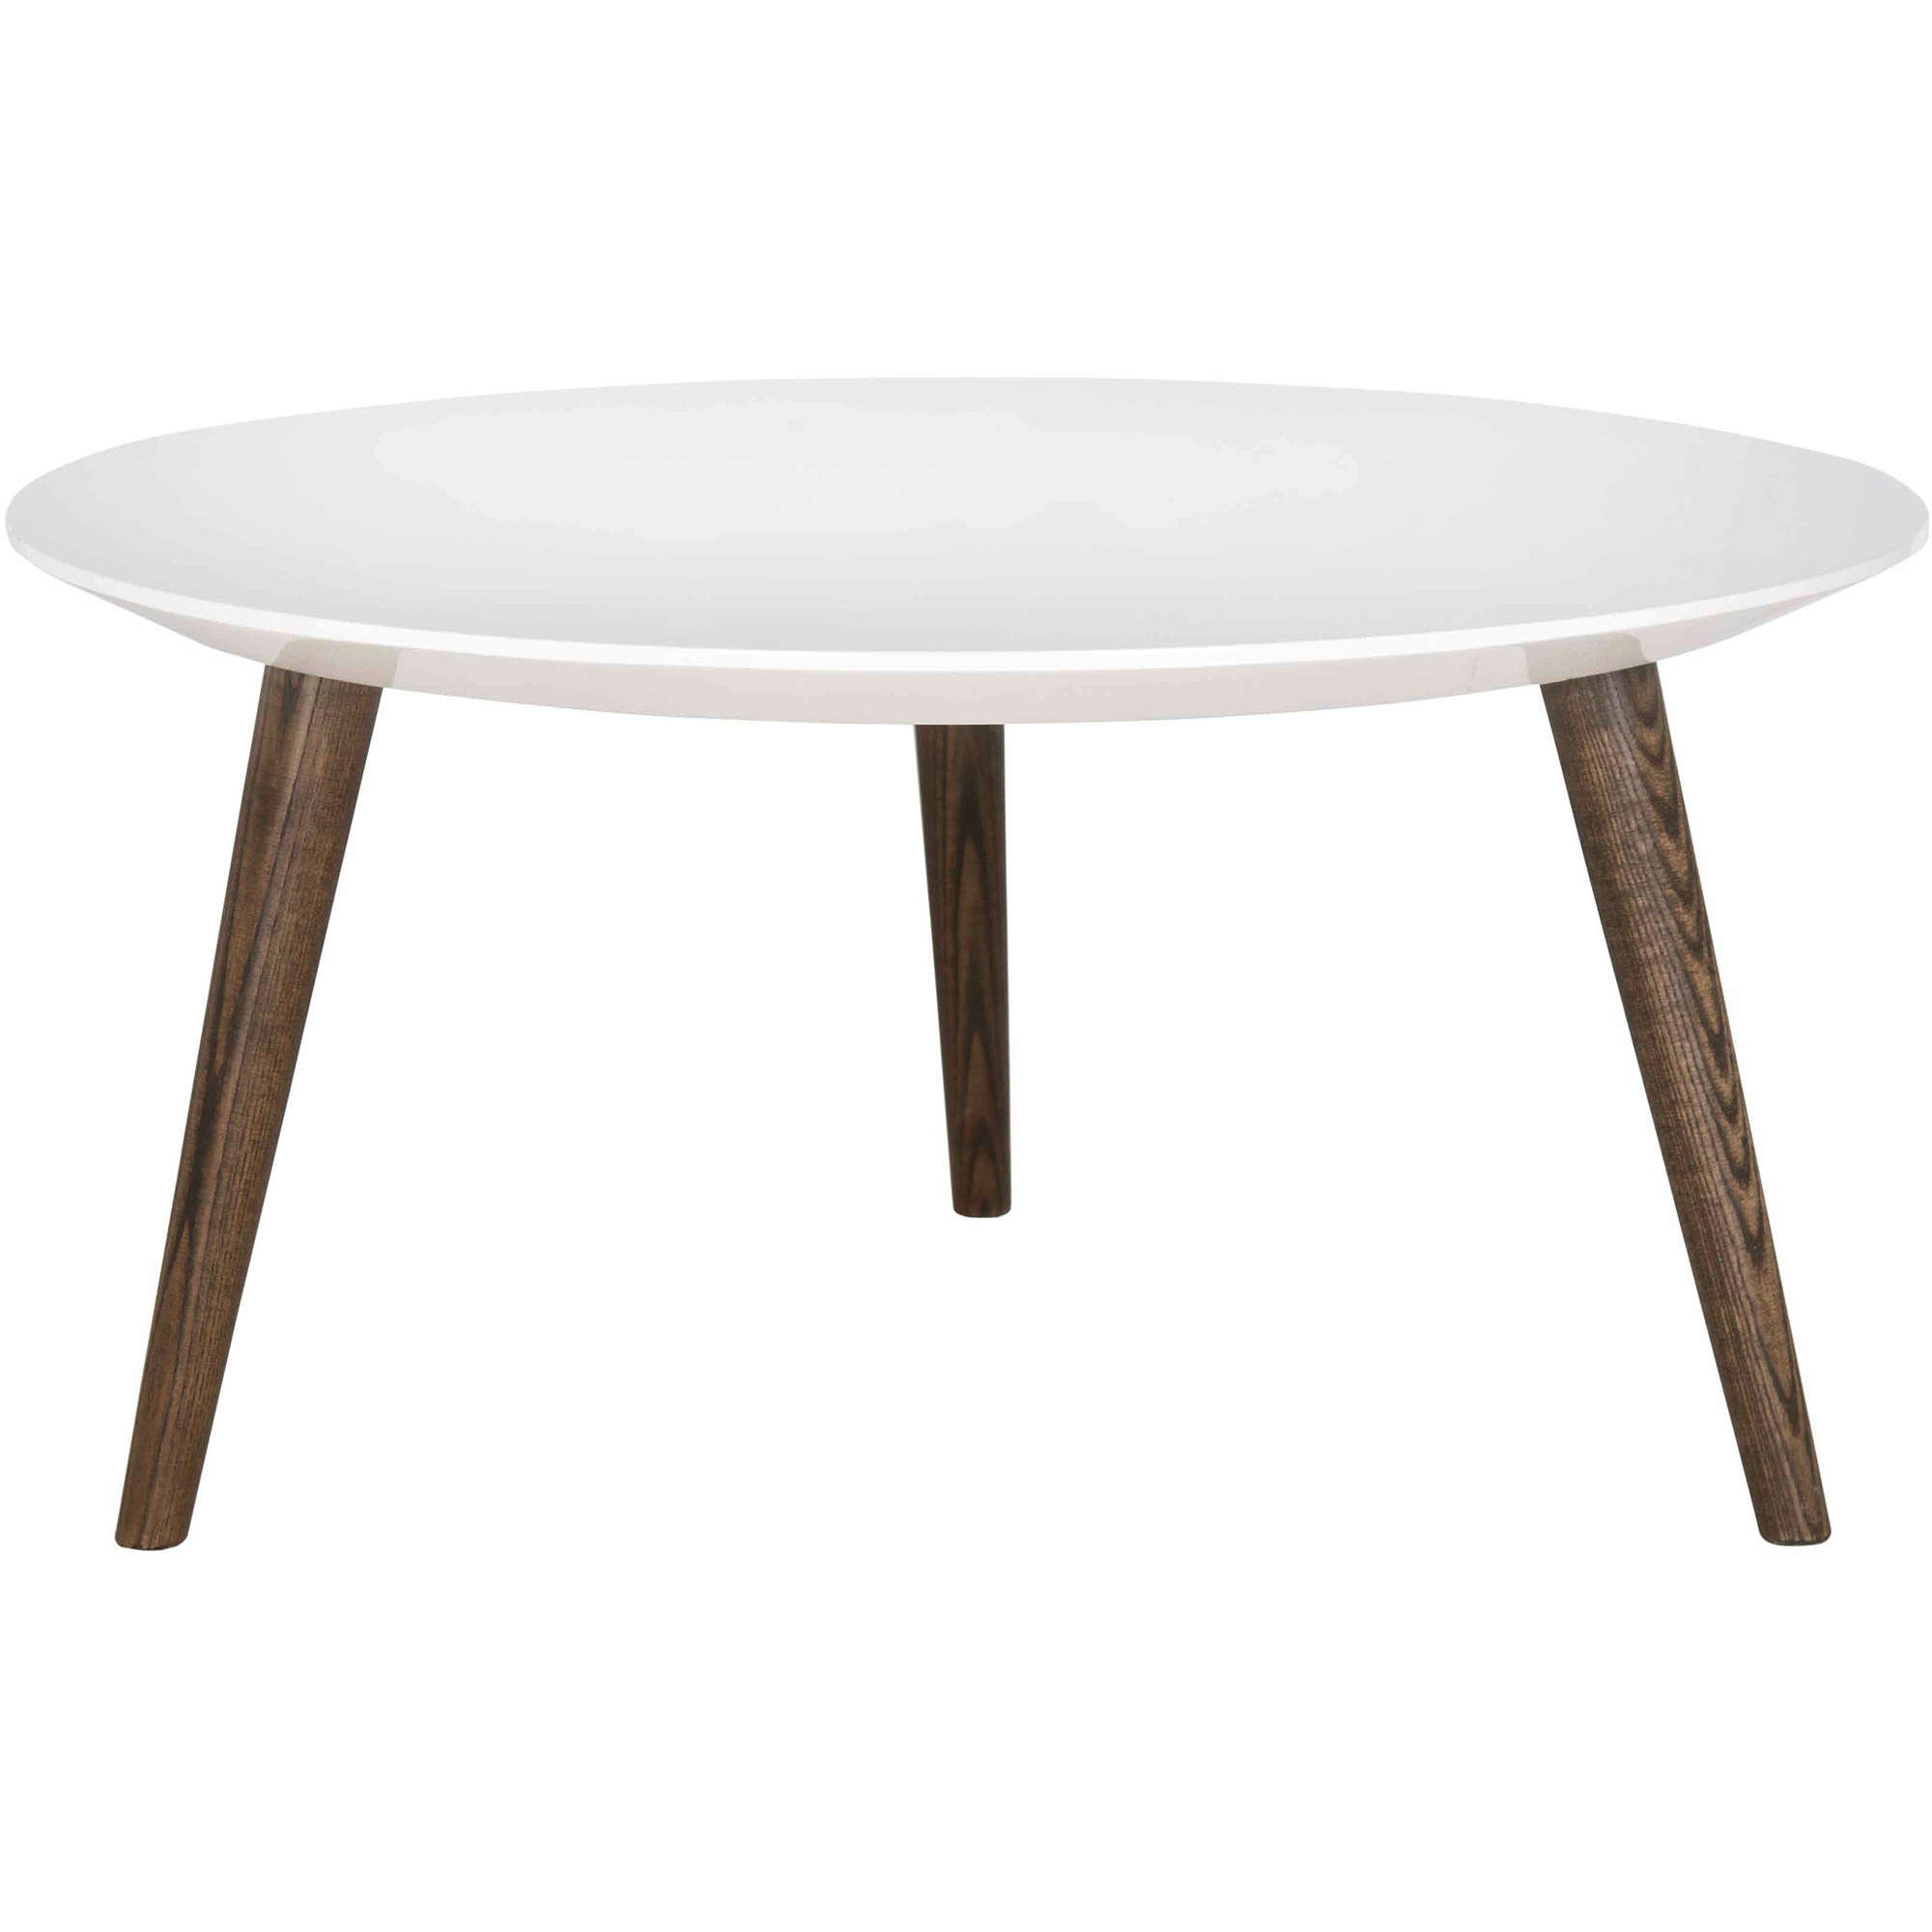 safavieh josiah lacquer accent table white and dark brown acrylic snack kitchenette furniture bath beyond floor lamps decorative chairs pier one art blue outdoor side living room